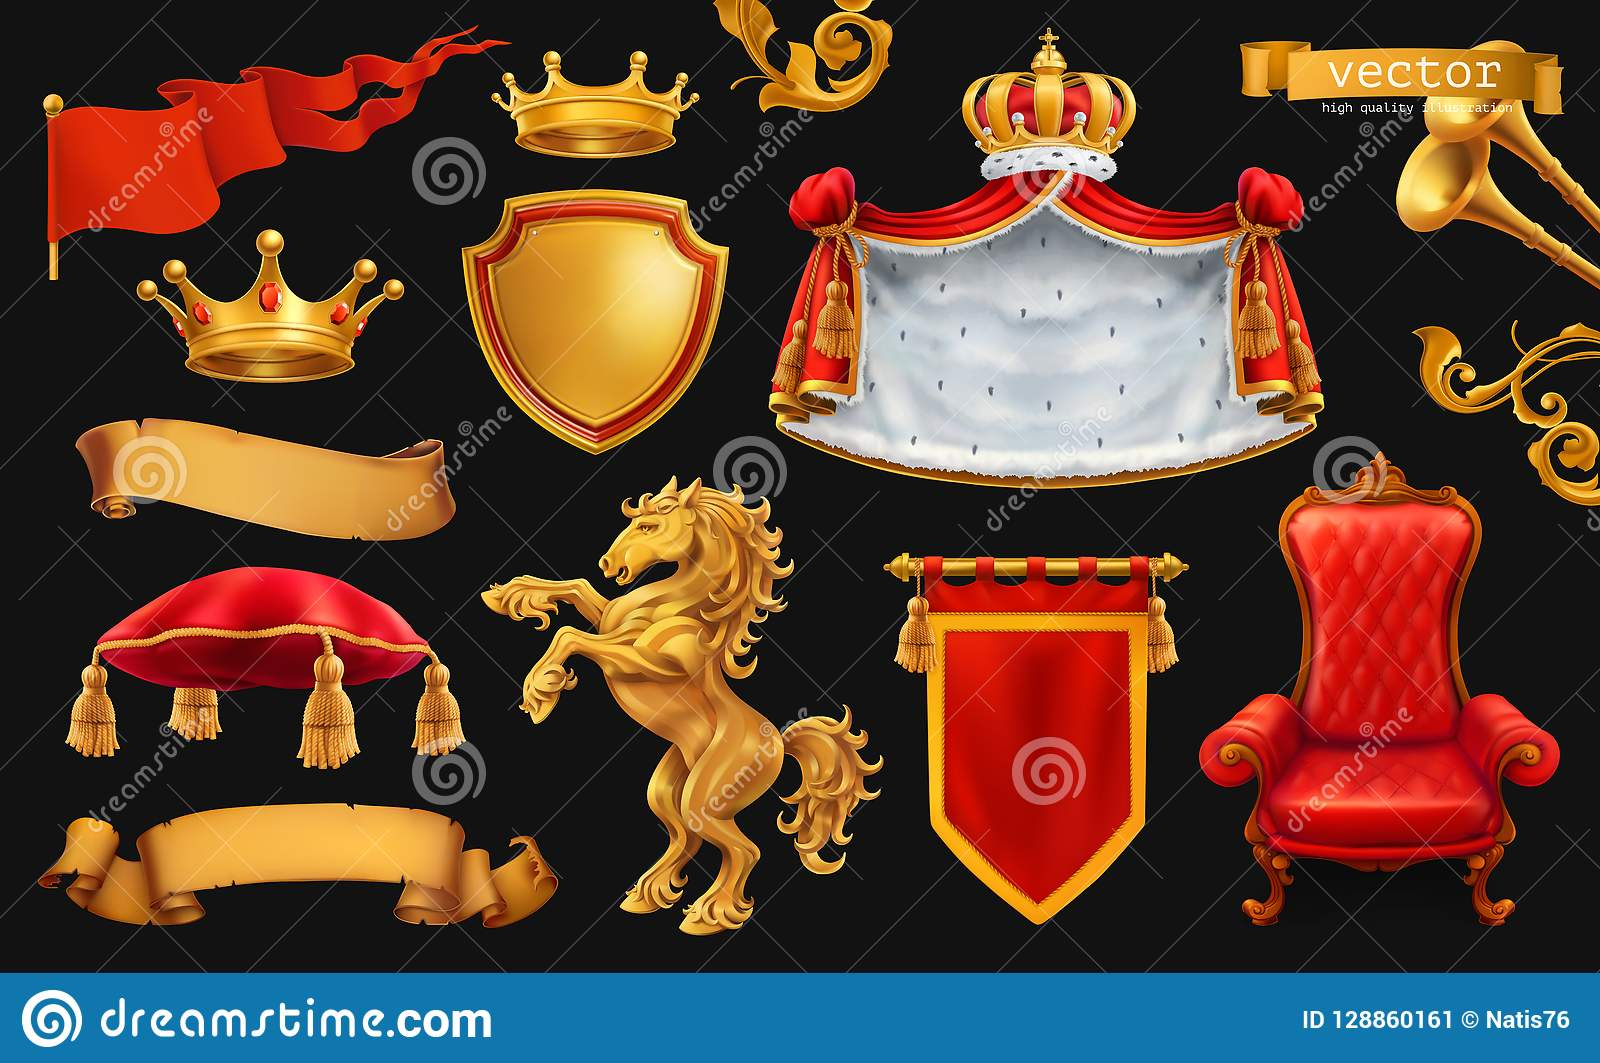 Gold crown of the king. Royal chair, mantle, pillow. 3d vector icon set on black